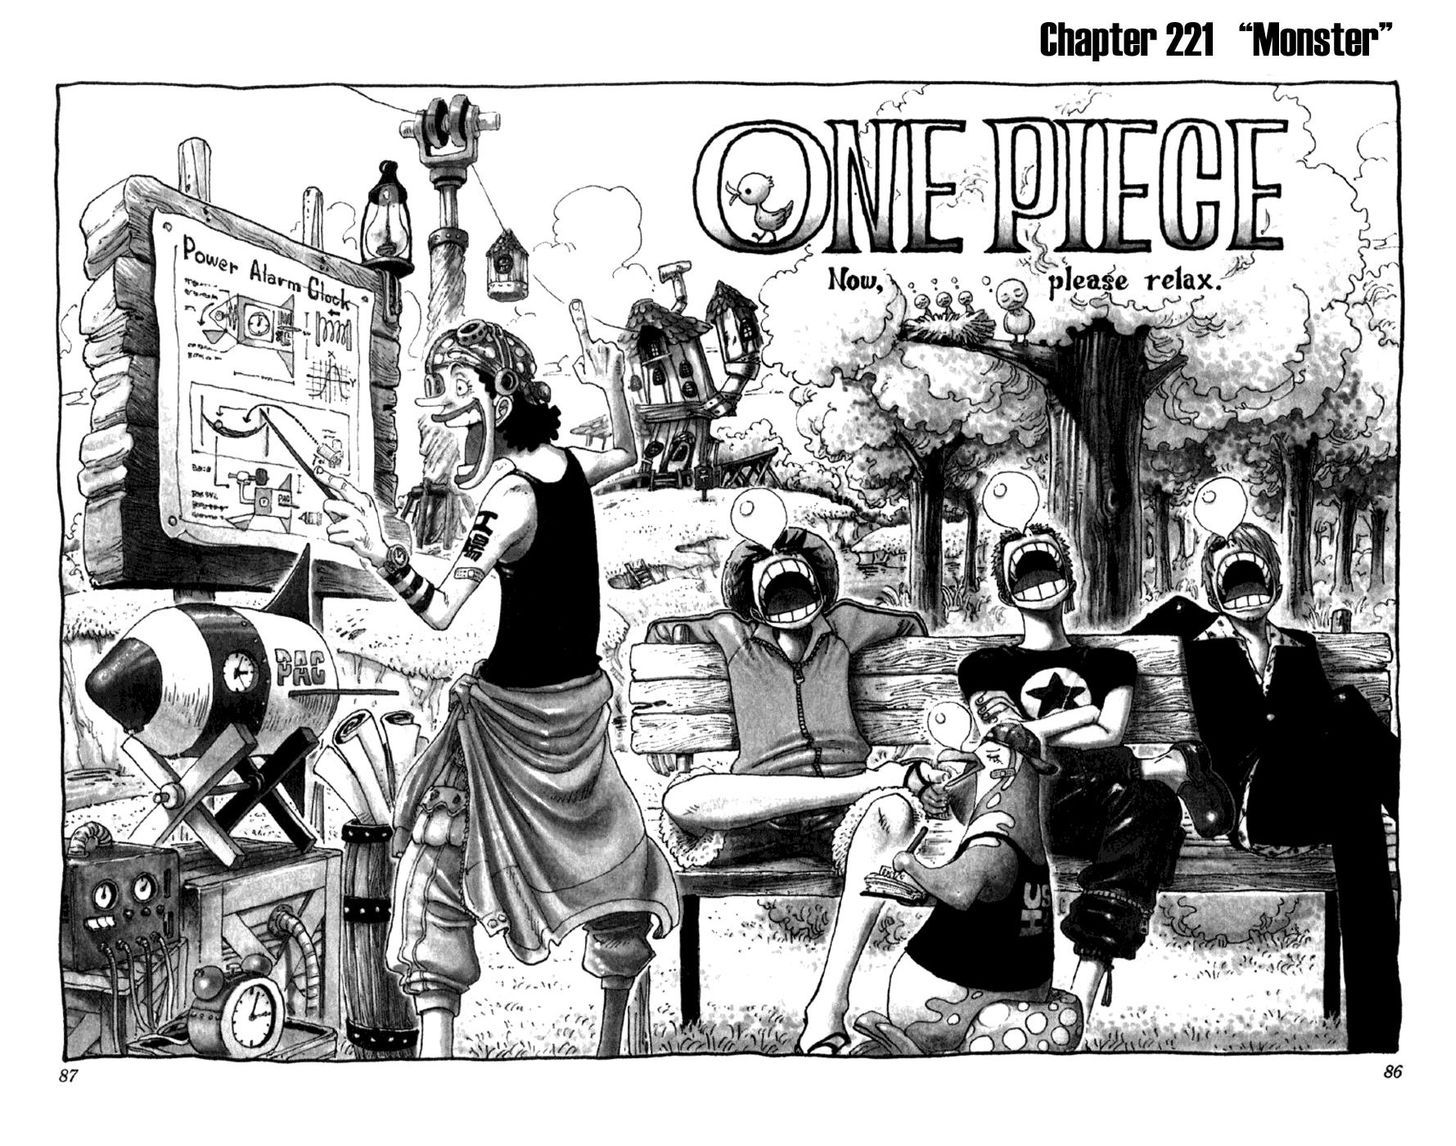 https://im.nineanime.com/comics/pic9/32/96/2569/OnePiece2210693.jpg Page 1